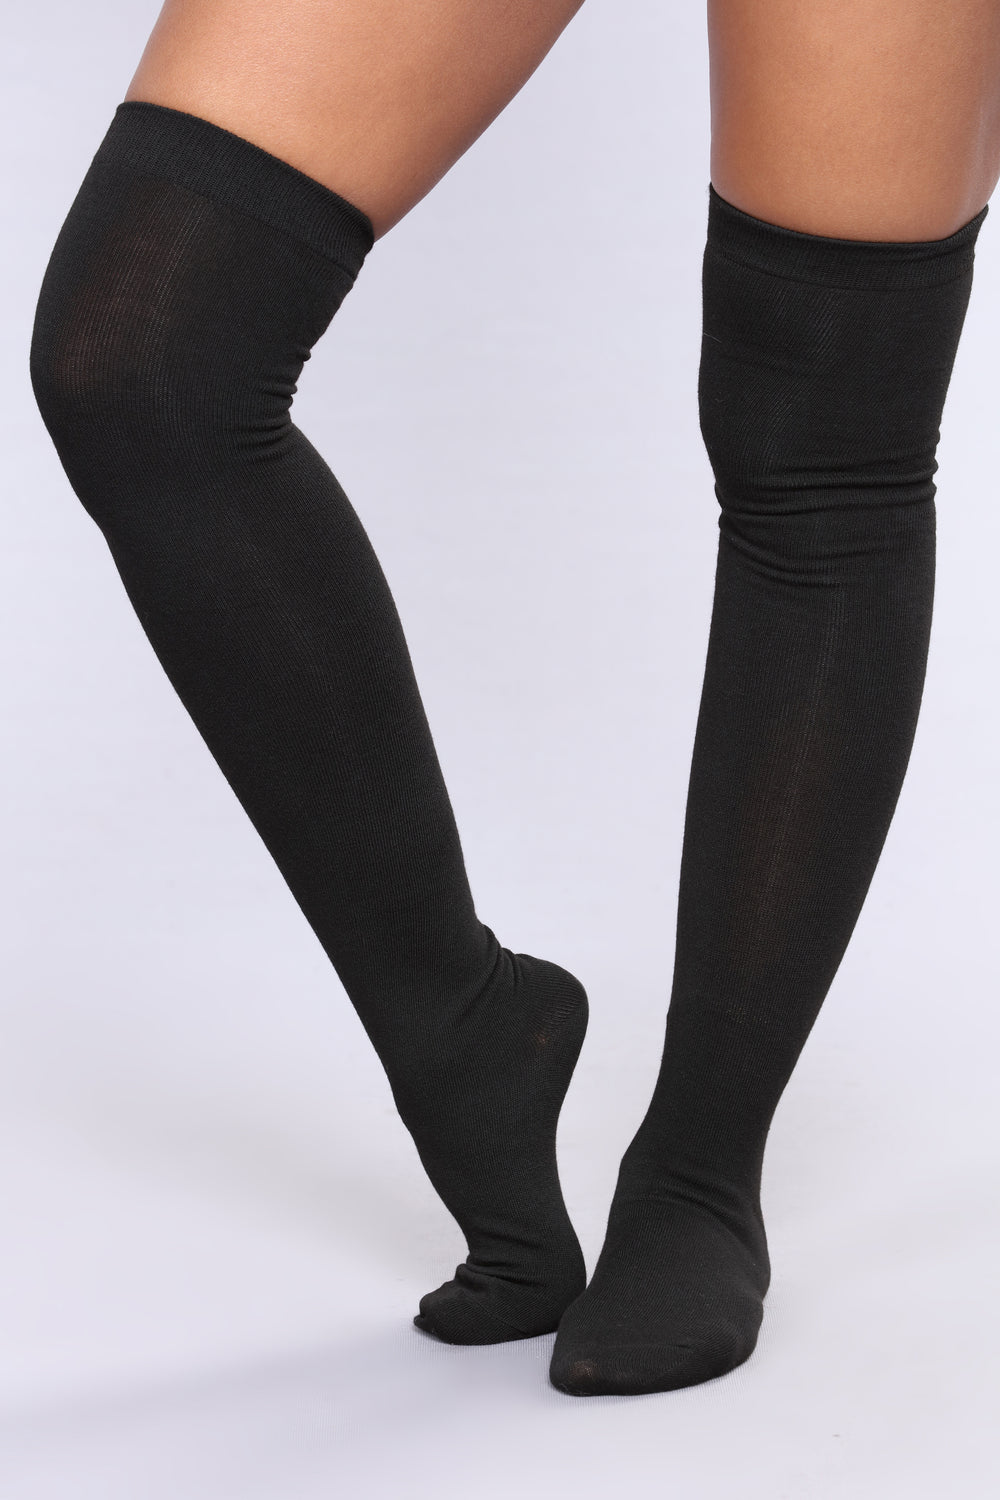 Warm Me Up Thigh High Socks - Black